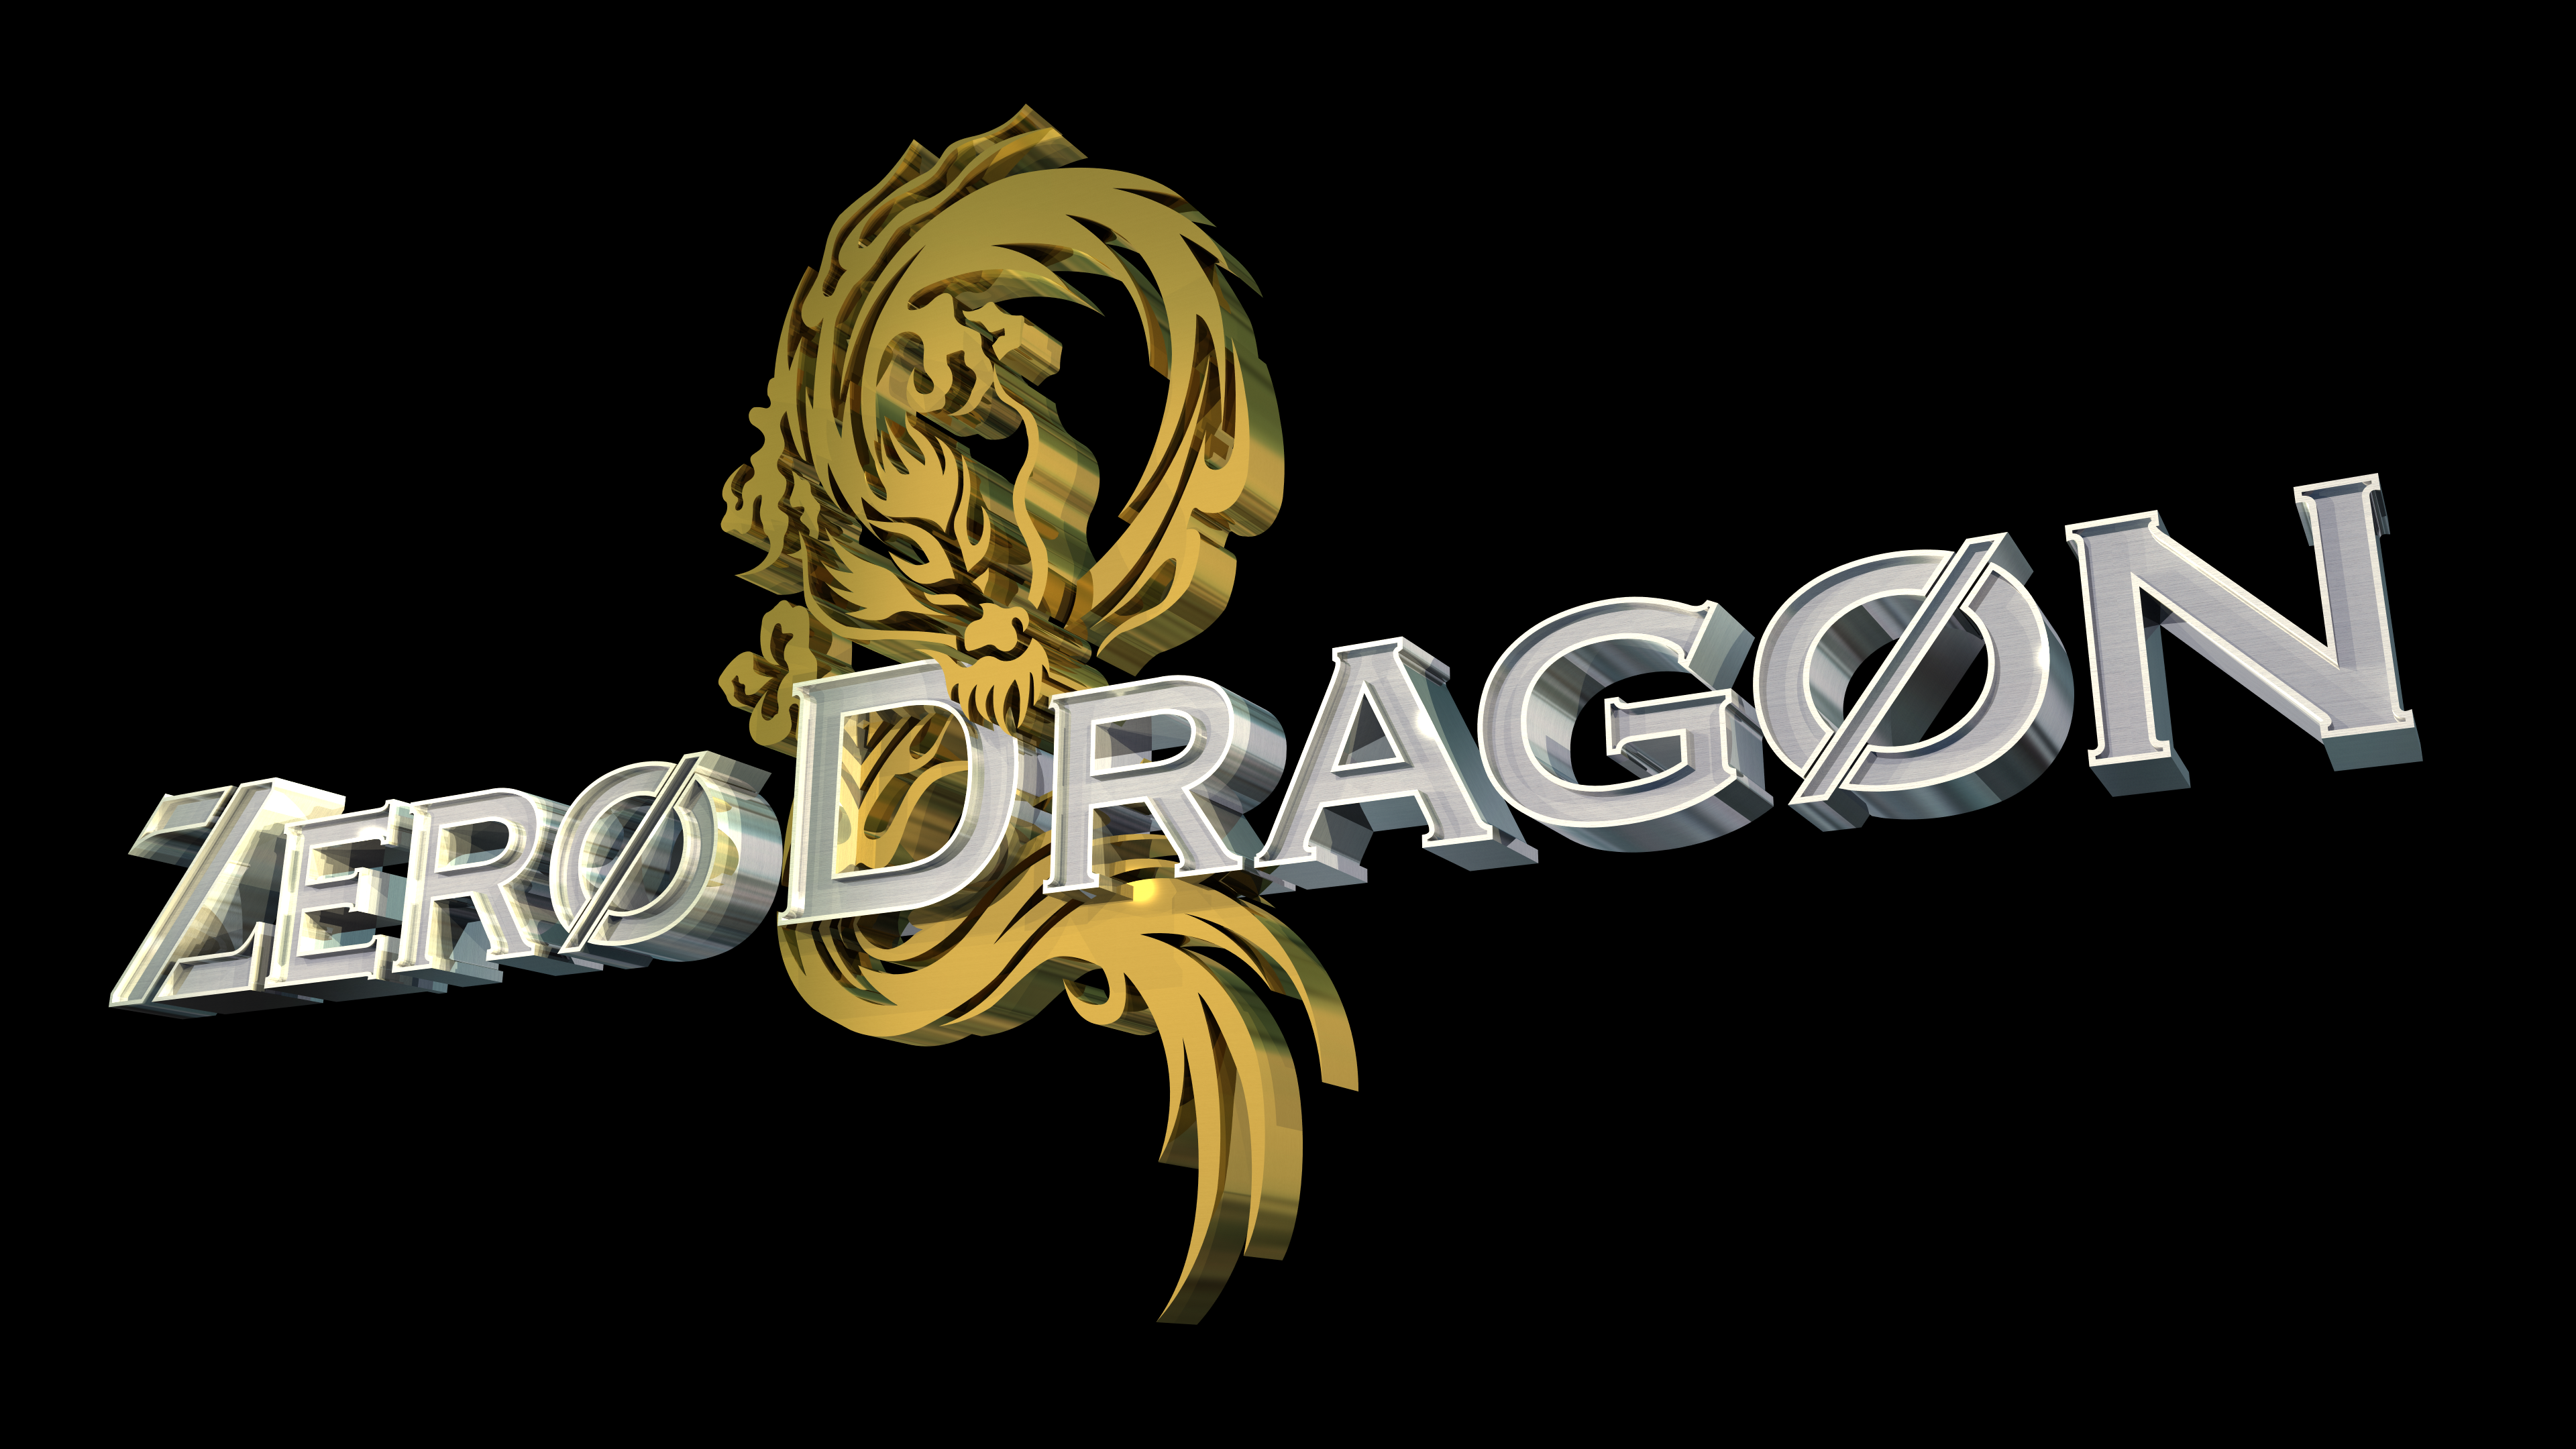 ZERODRAGON WEB SHOP